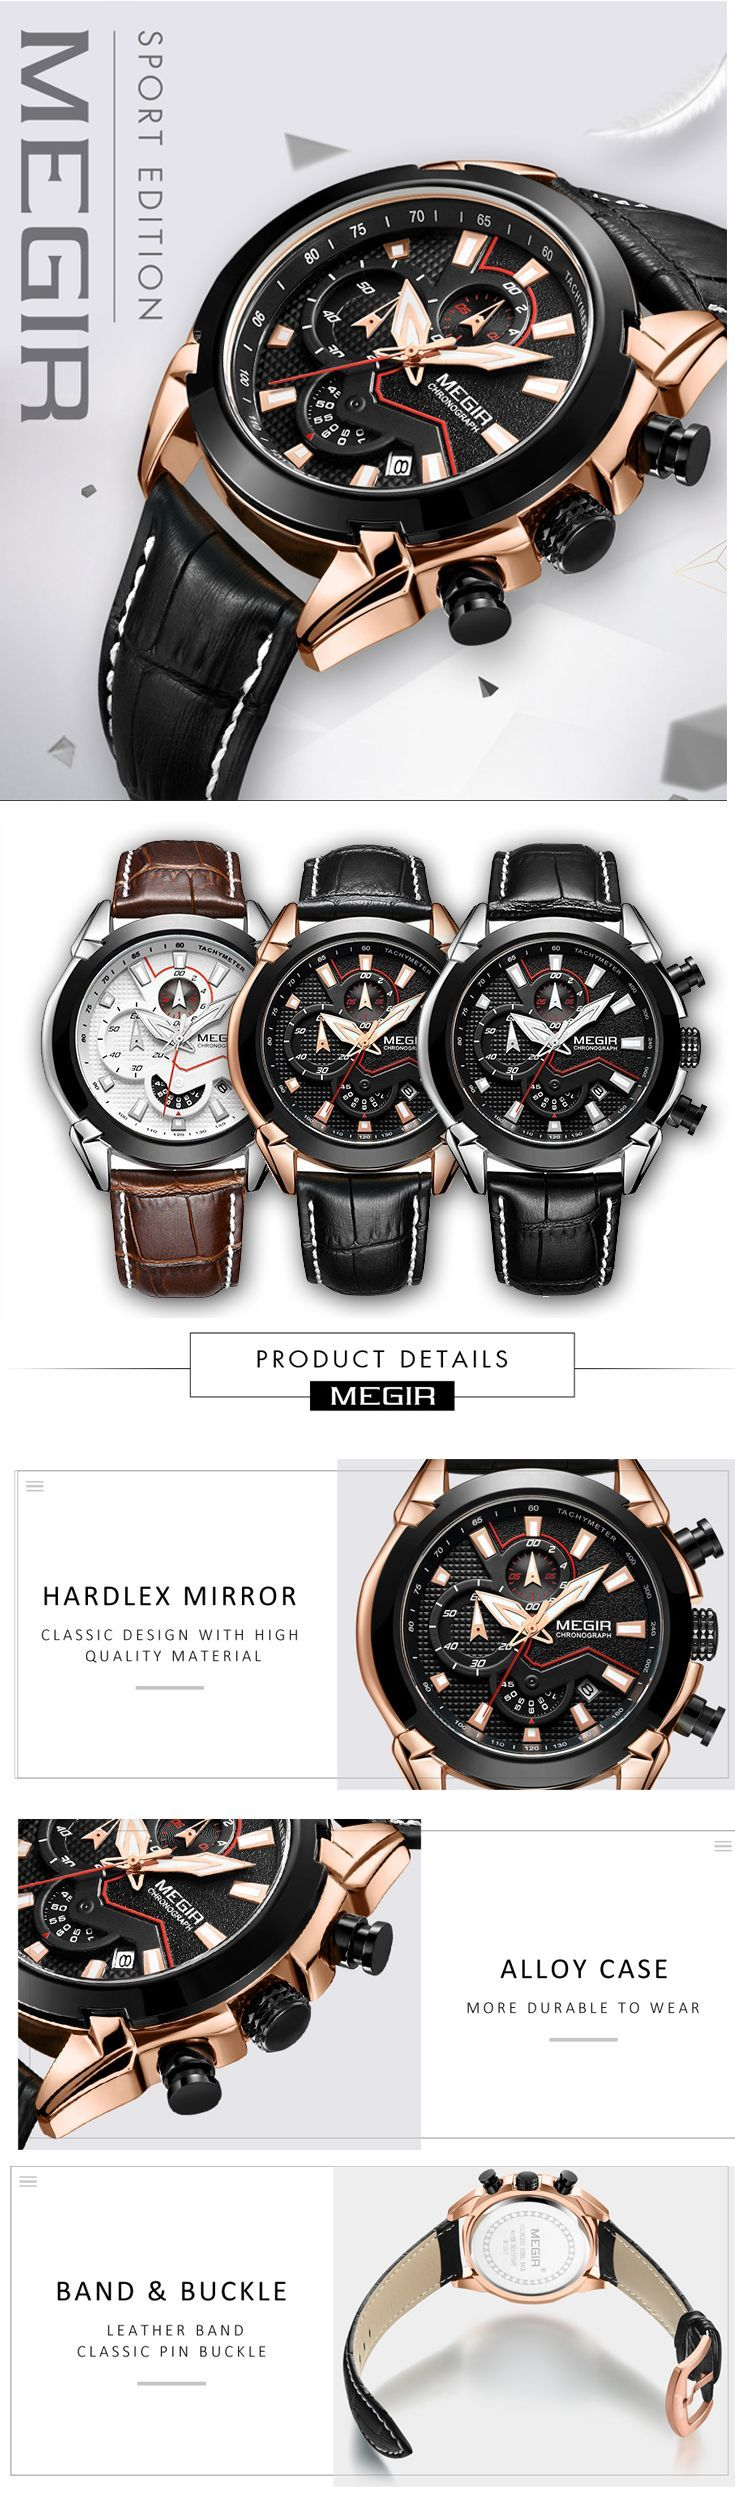 Men's luxury sport watches - Megir 2065 Leather band watch timepiece chronograph - men's top brand style affordable fashion accessories #menswatch #leatherwatch #watches